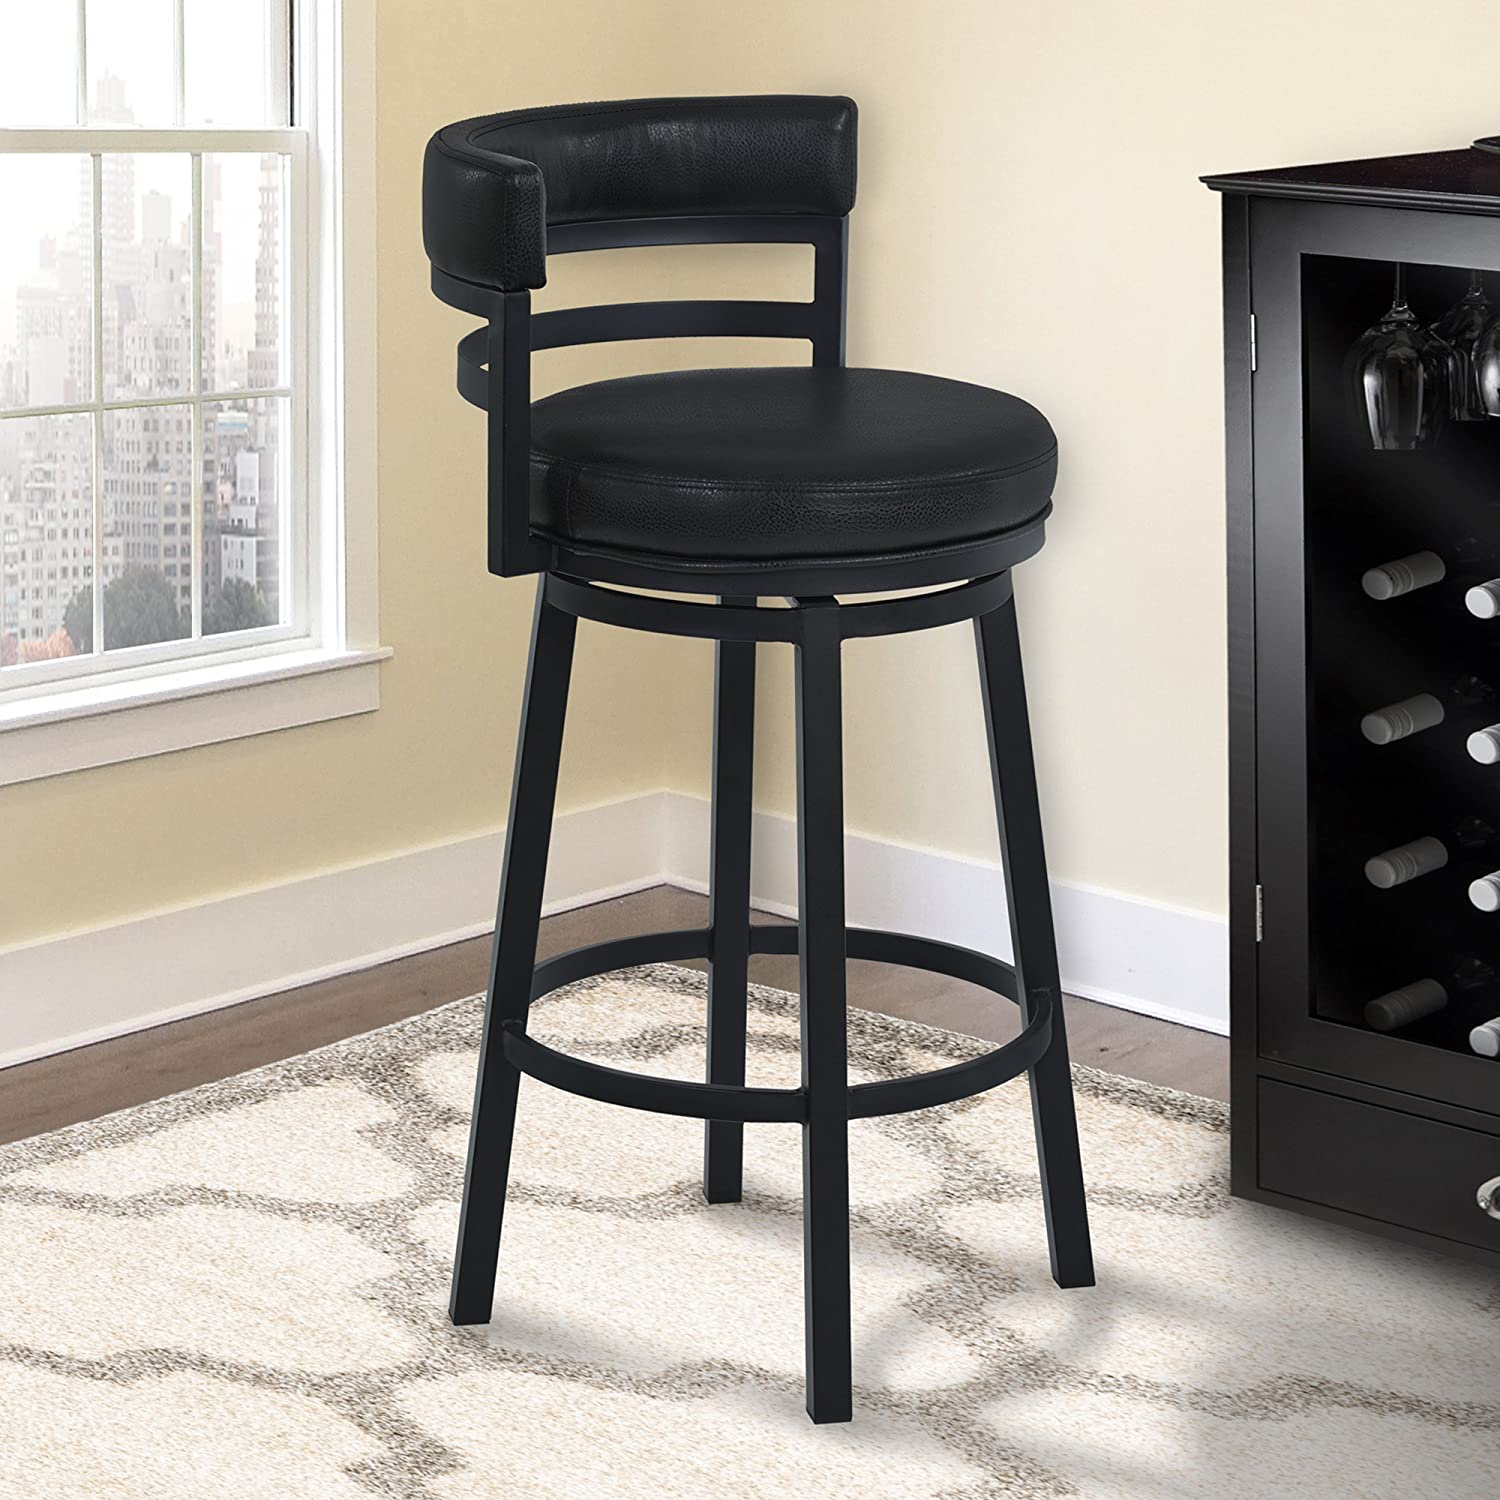 Armen Living Madrid 26 Counter Height Swivel Barstool In Ford Black Faux Leather And Black Metal Finish Furniture Decor Amazon Com